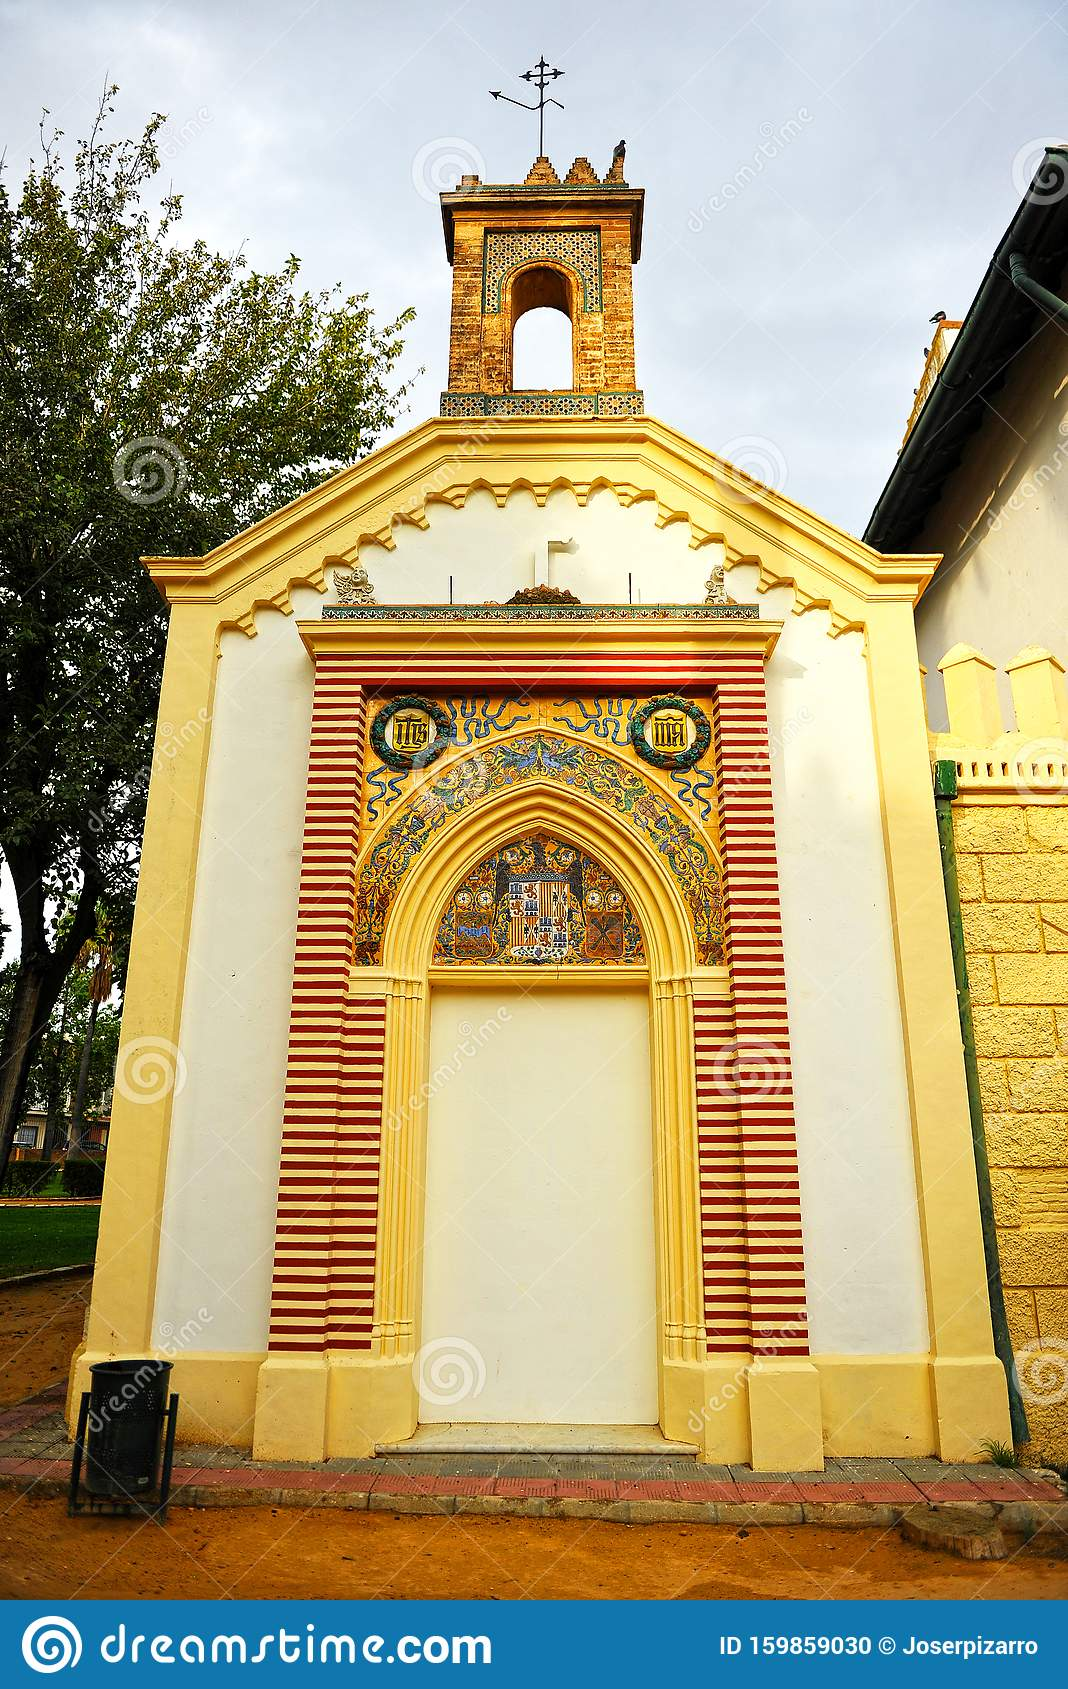 The Old Ibarra Chapel Located At The Park Of Alqueria In Dos Hermanas Province Of Seville Spain Stock Photo Image Of Hall Farmhouse 159859030